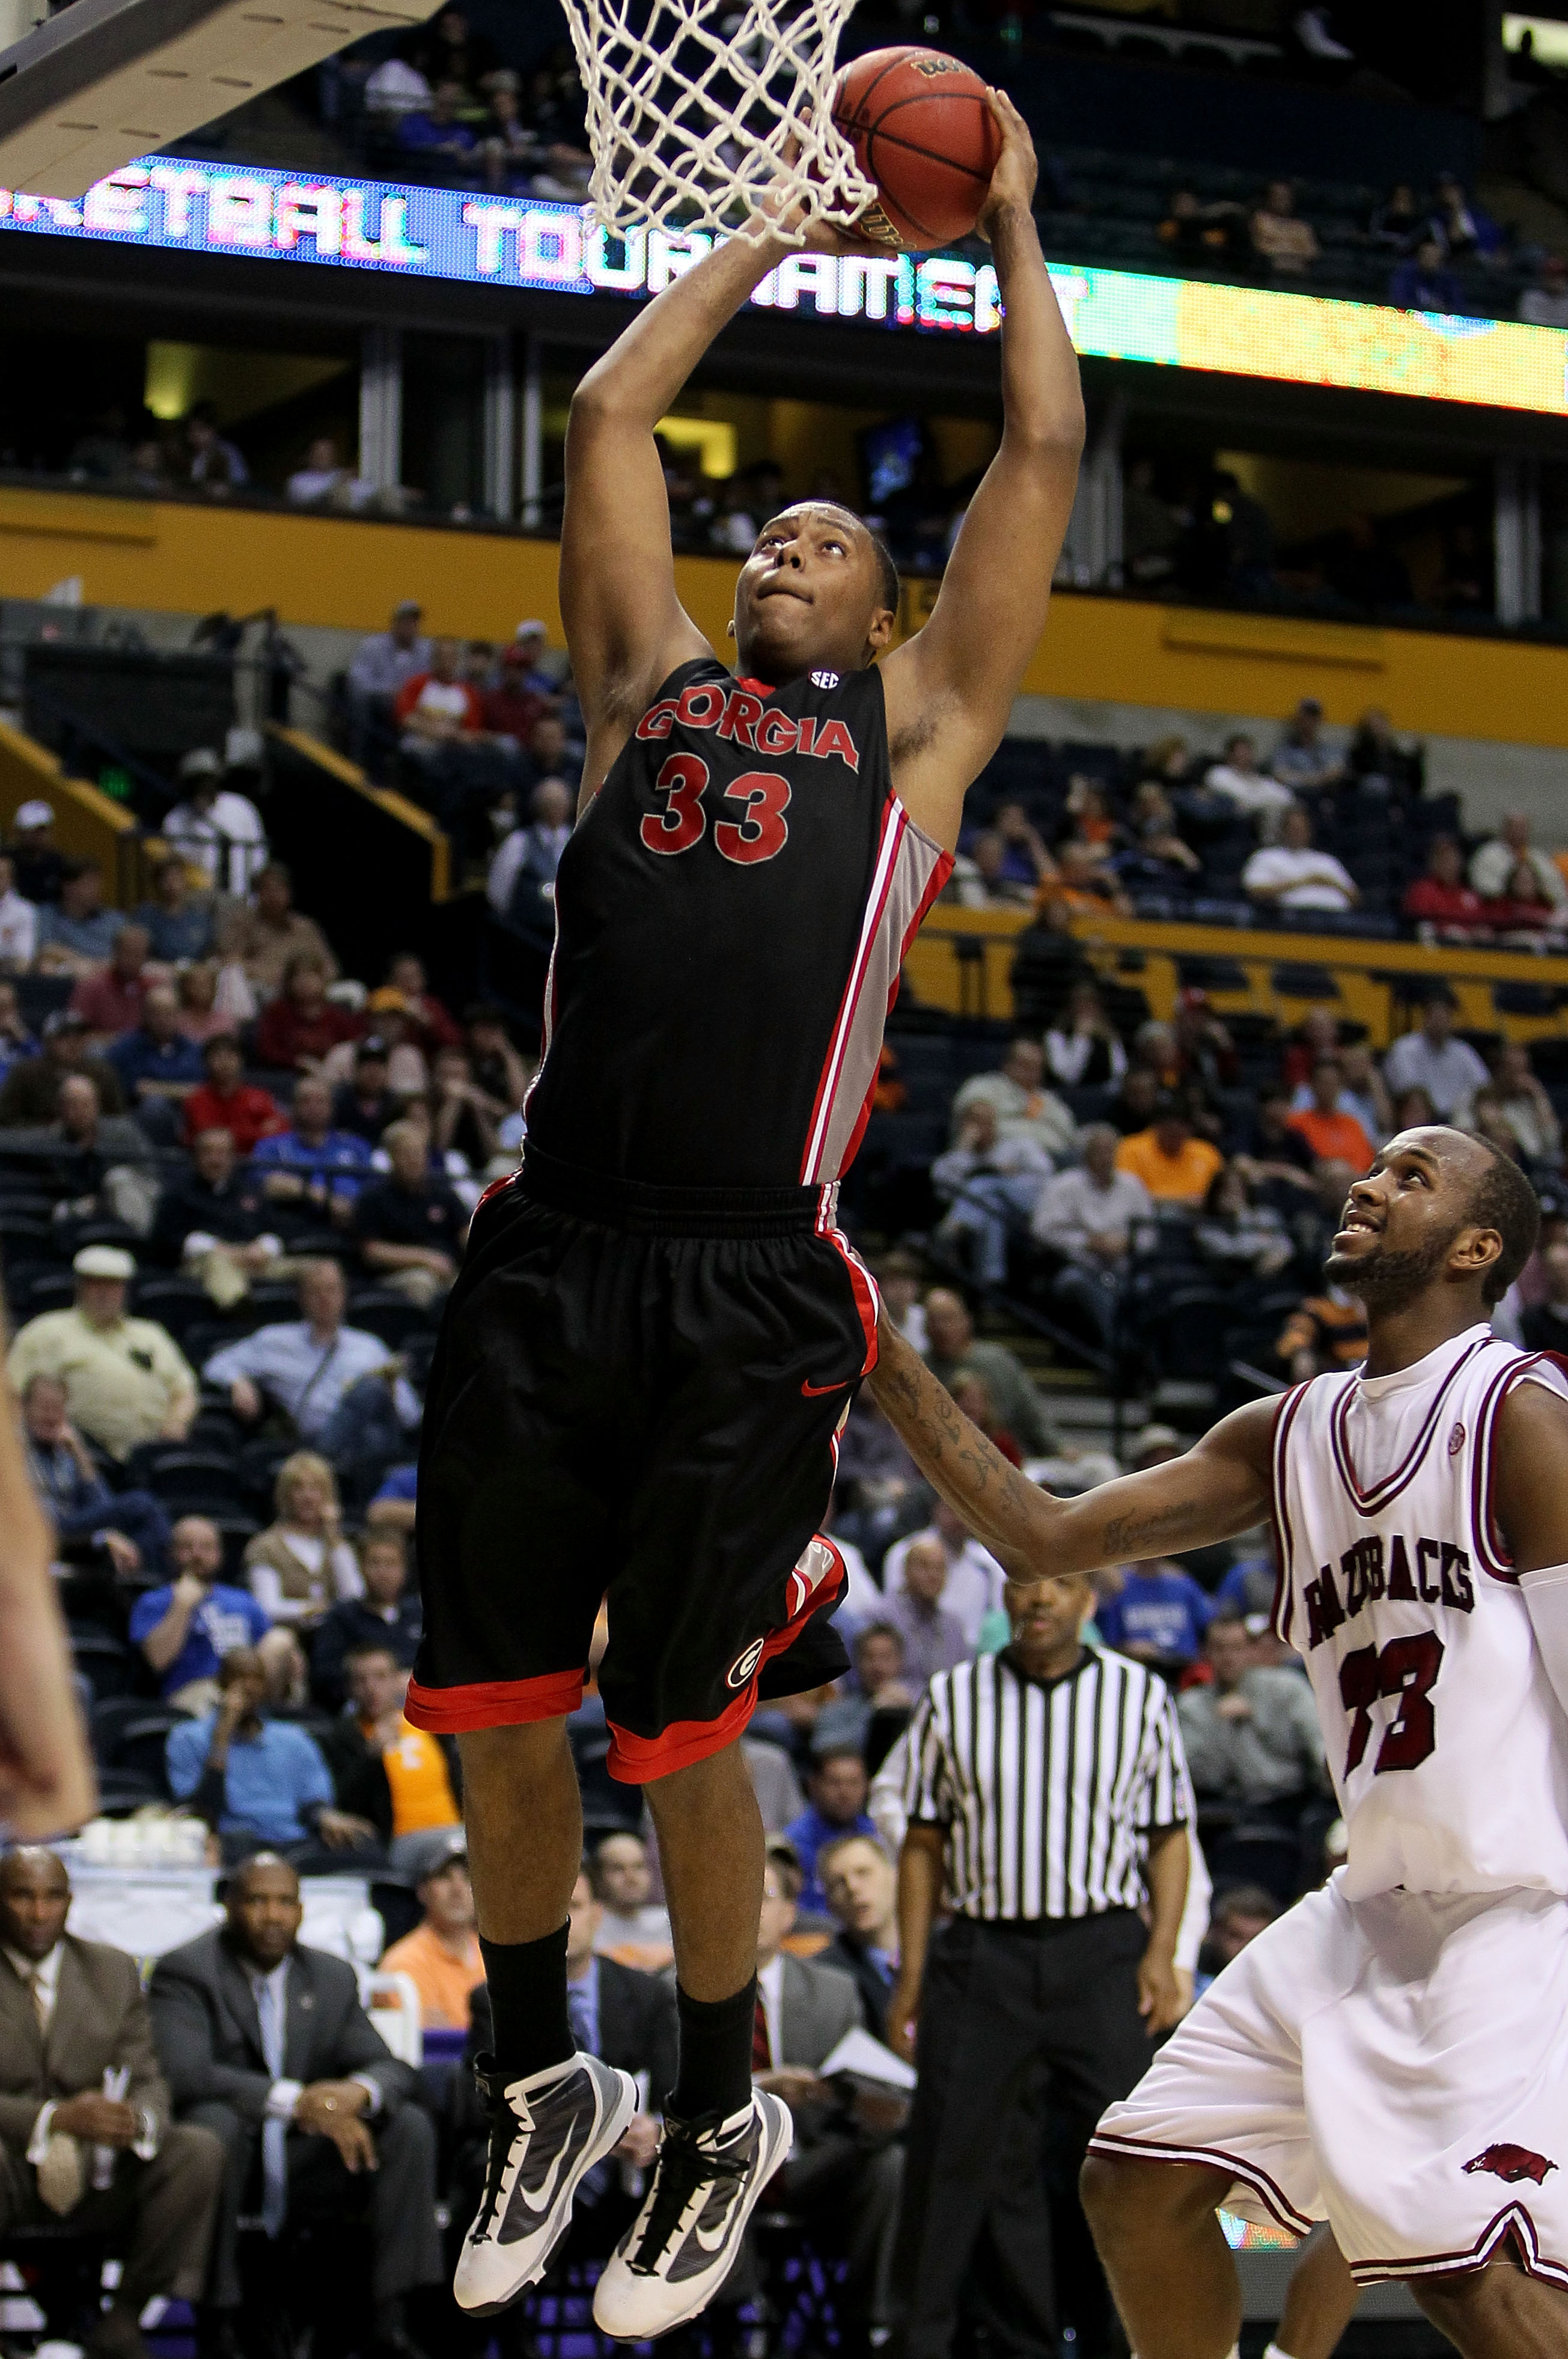 NASHVILLE, TN - MARCH 11:  Trey Thompkins #33 of the Georgia Bulldogs goes up for a dunk attempt against the Arkanasas Razorbacks during the first round of the SEC Men's Basketball Tournament at the Bridgestone Arena on March 11, 2010 in Nashville, Tennes